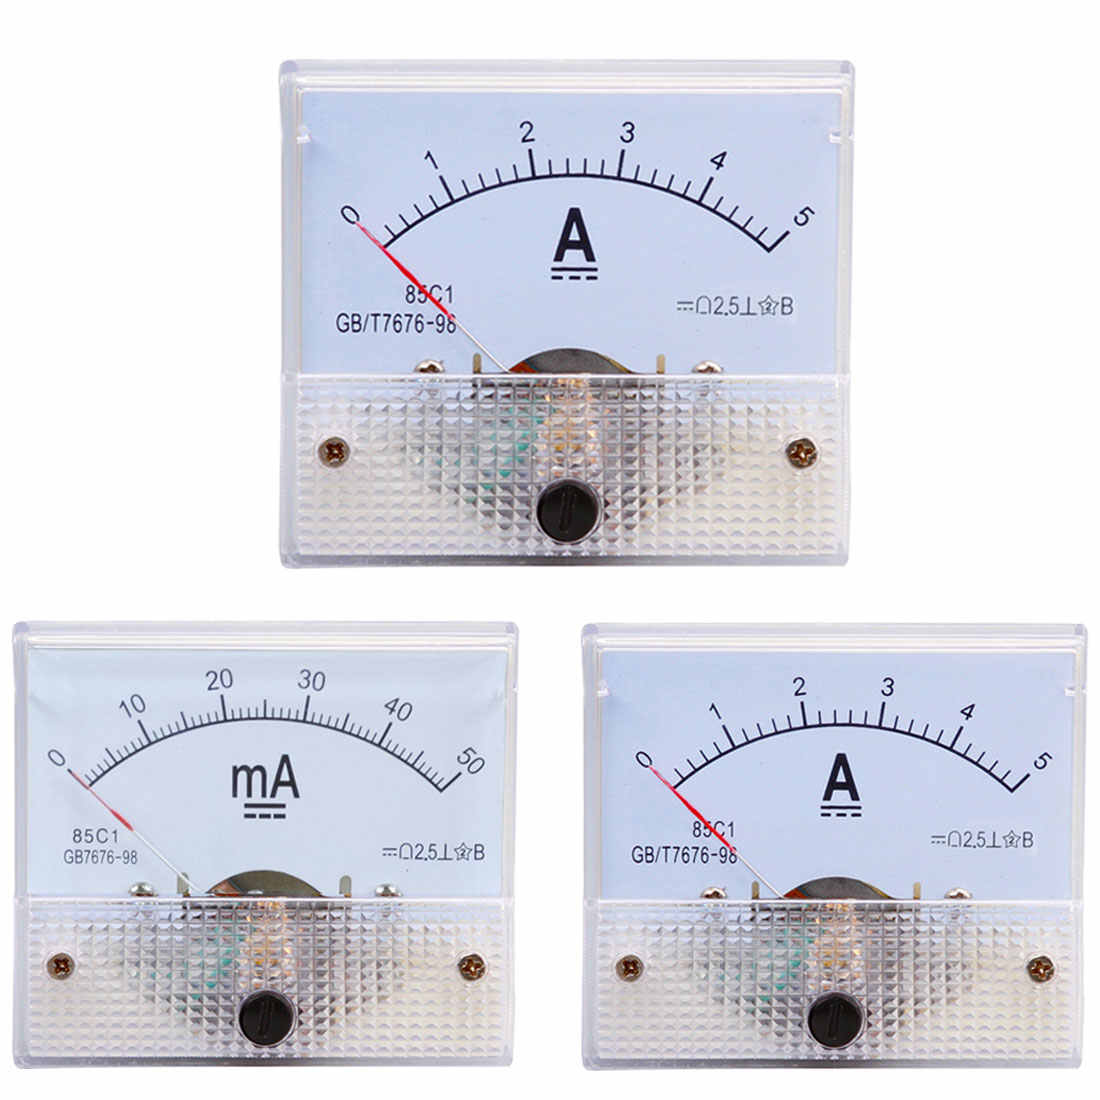 1Pc DC Pointer Current Meter 5A/10A/15A/20A/30A/50A/100A Analog Ammeter Current Meter Gauge Measuring Tools